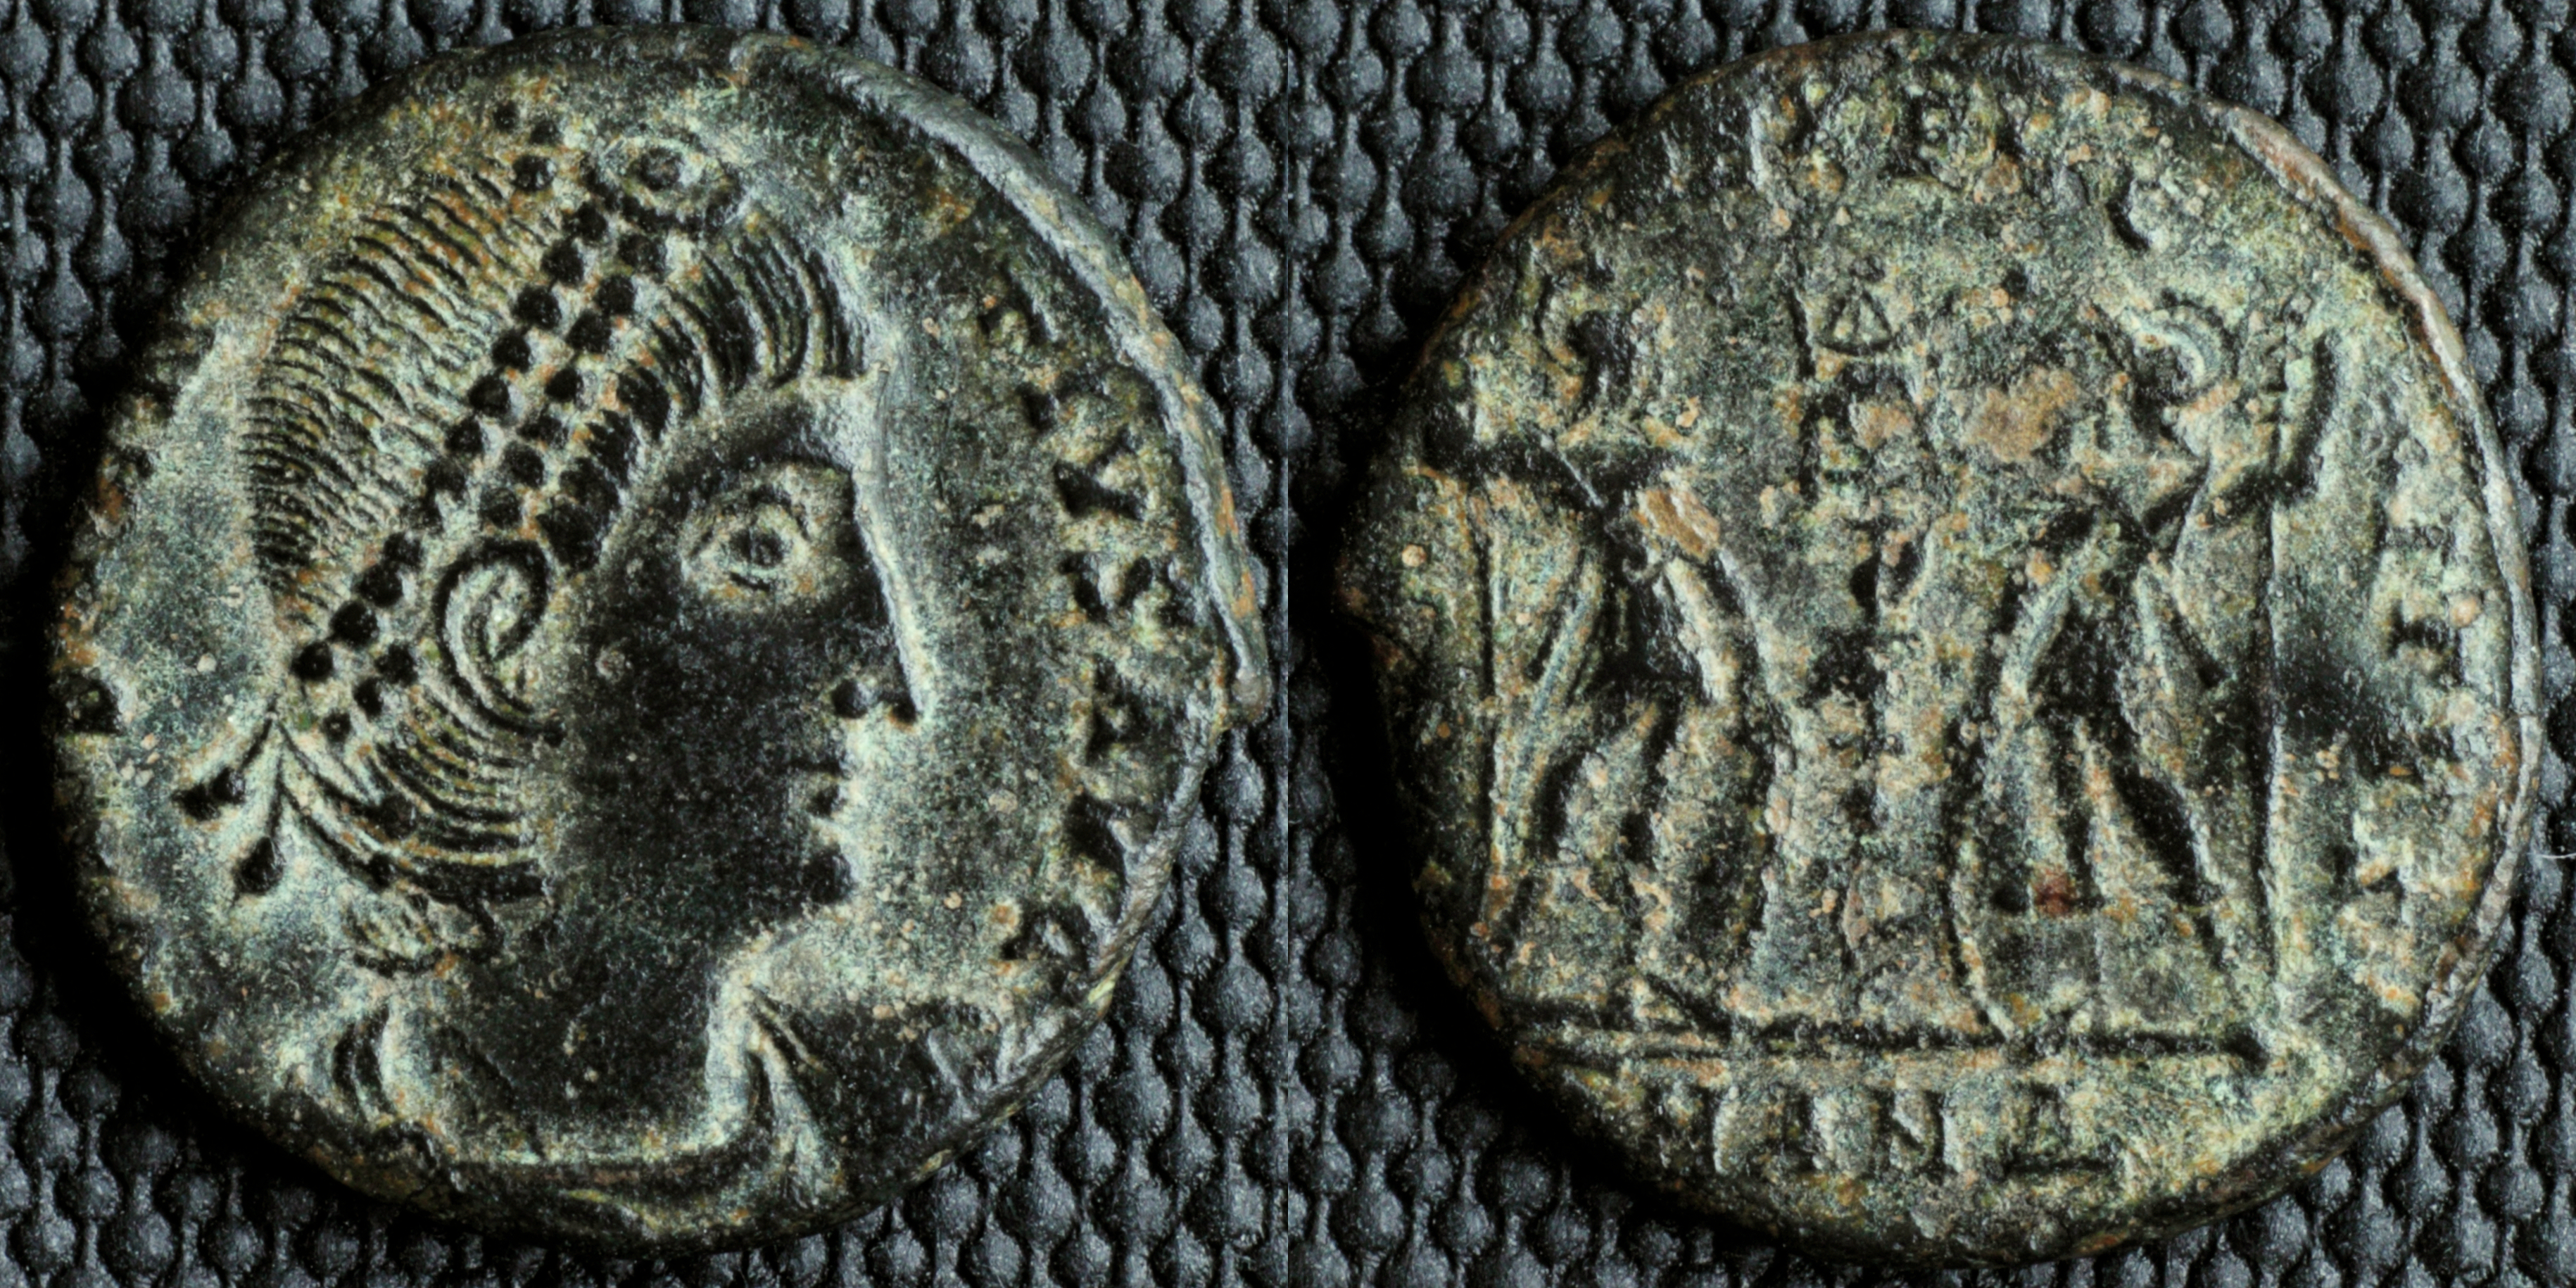 /Files/Images/Coinsite/CoinDB/40_Constantius_II_SMAND.jpg